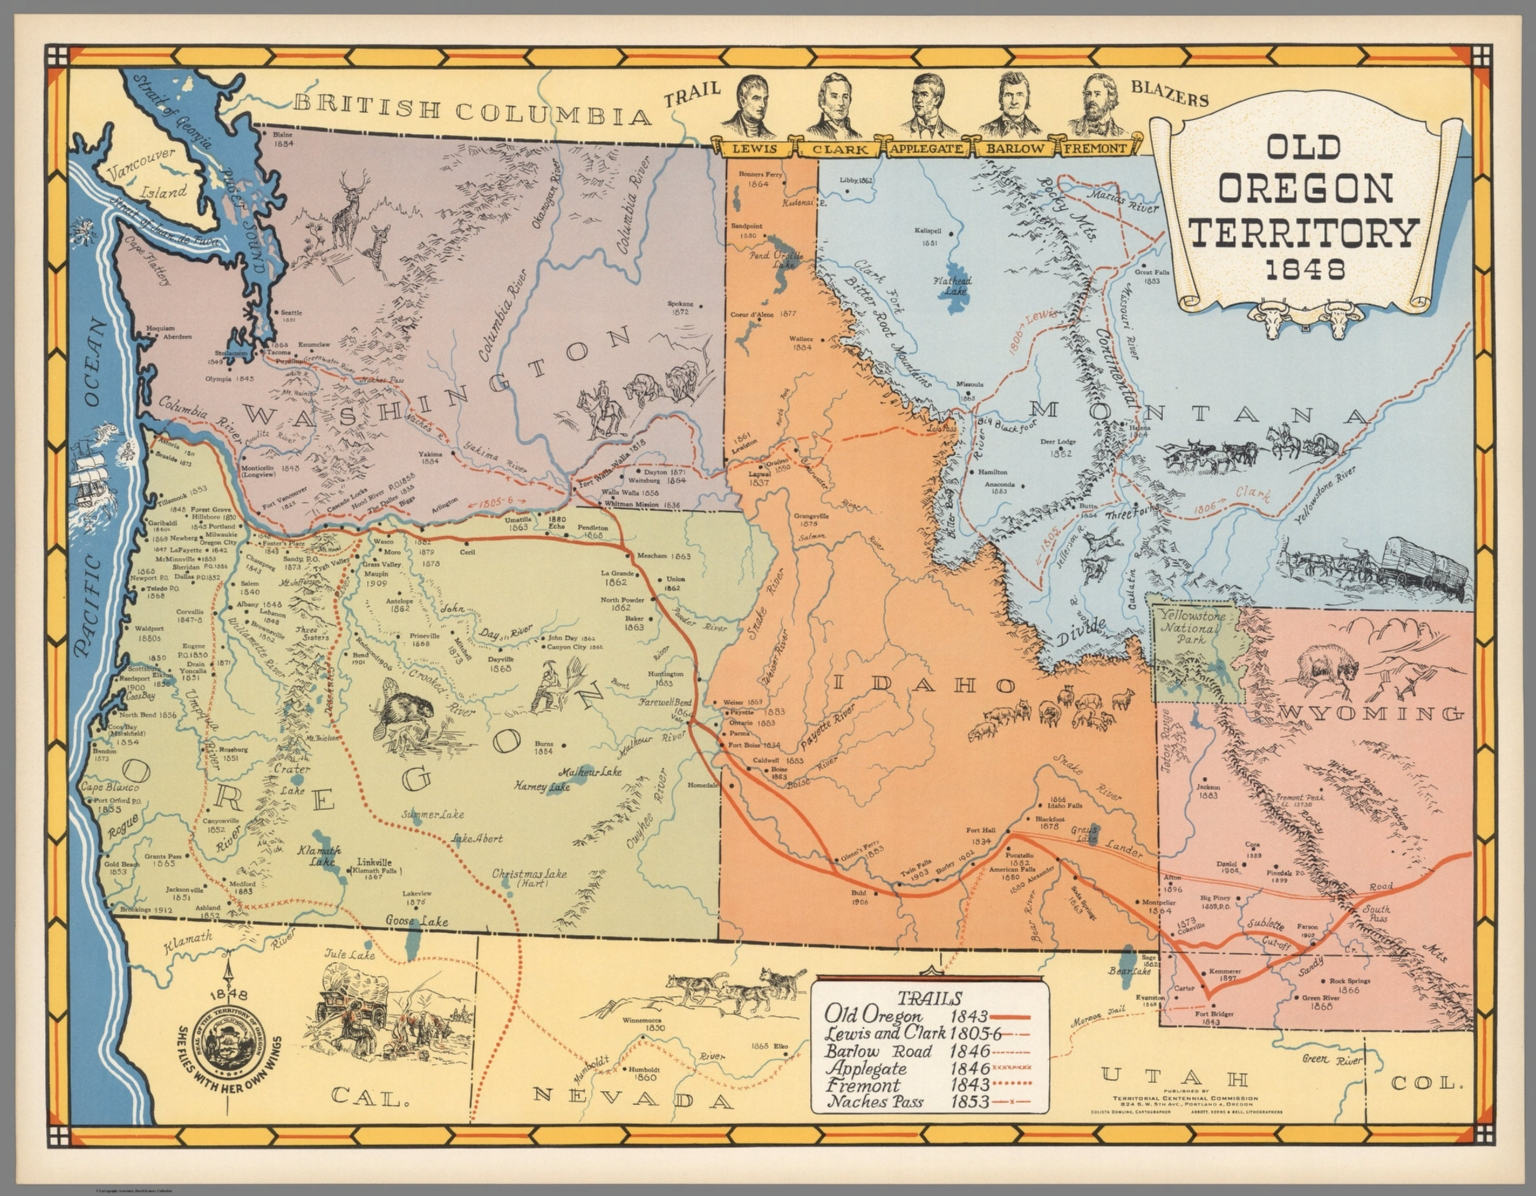 Old Oregon Territory 1848 David Rumsey Historical Map